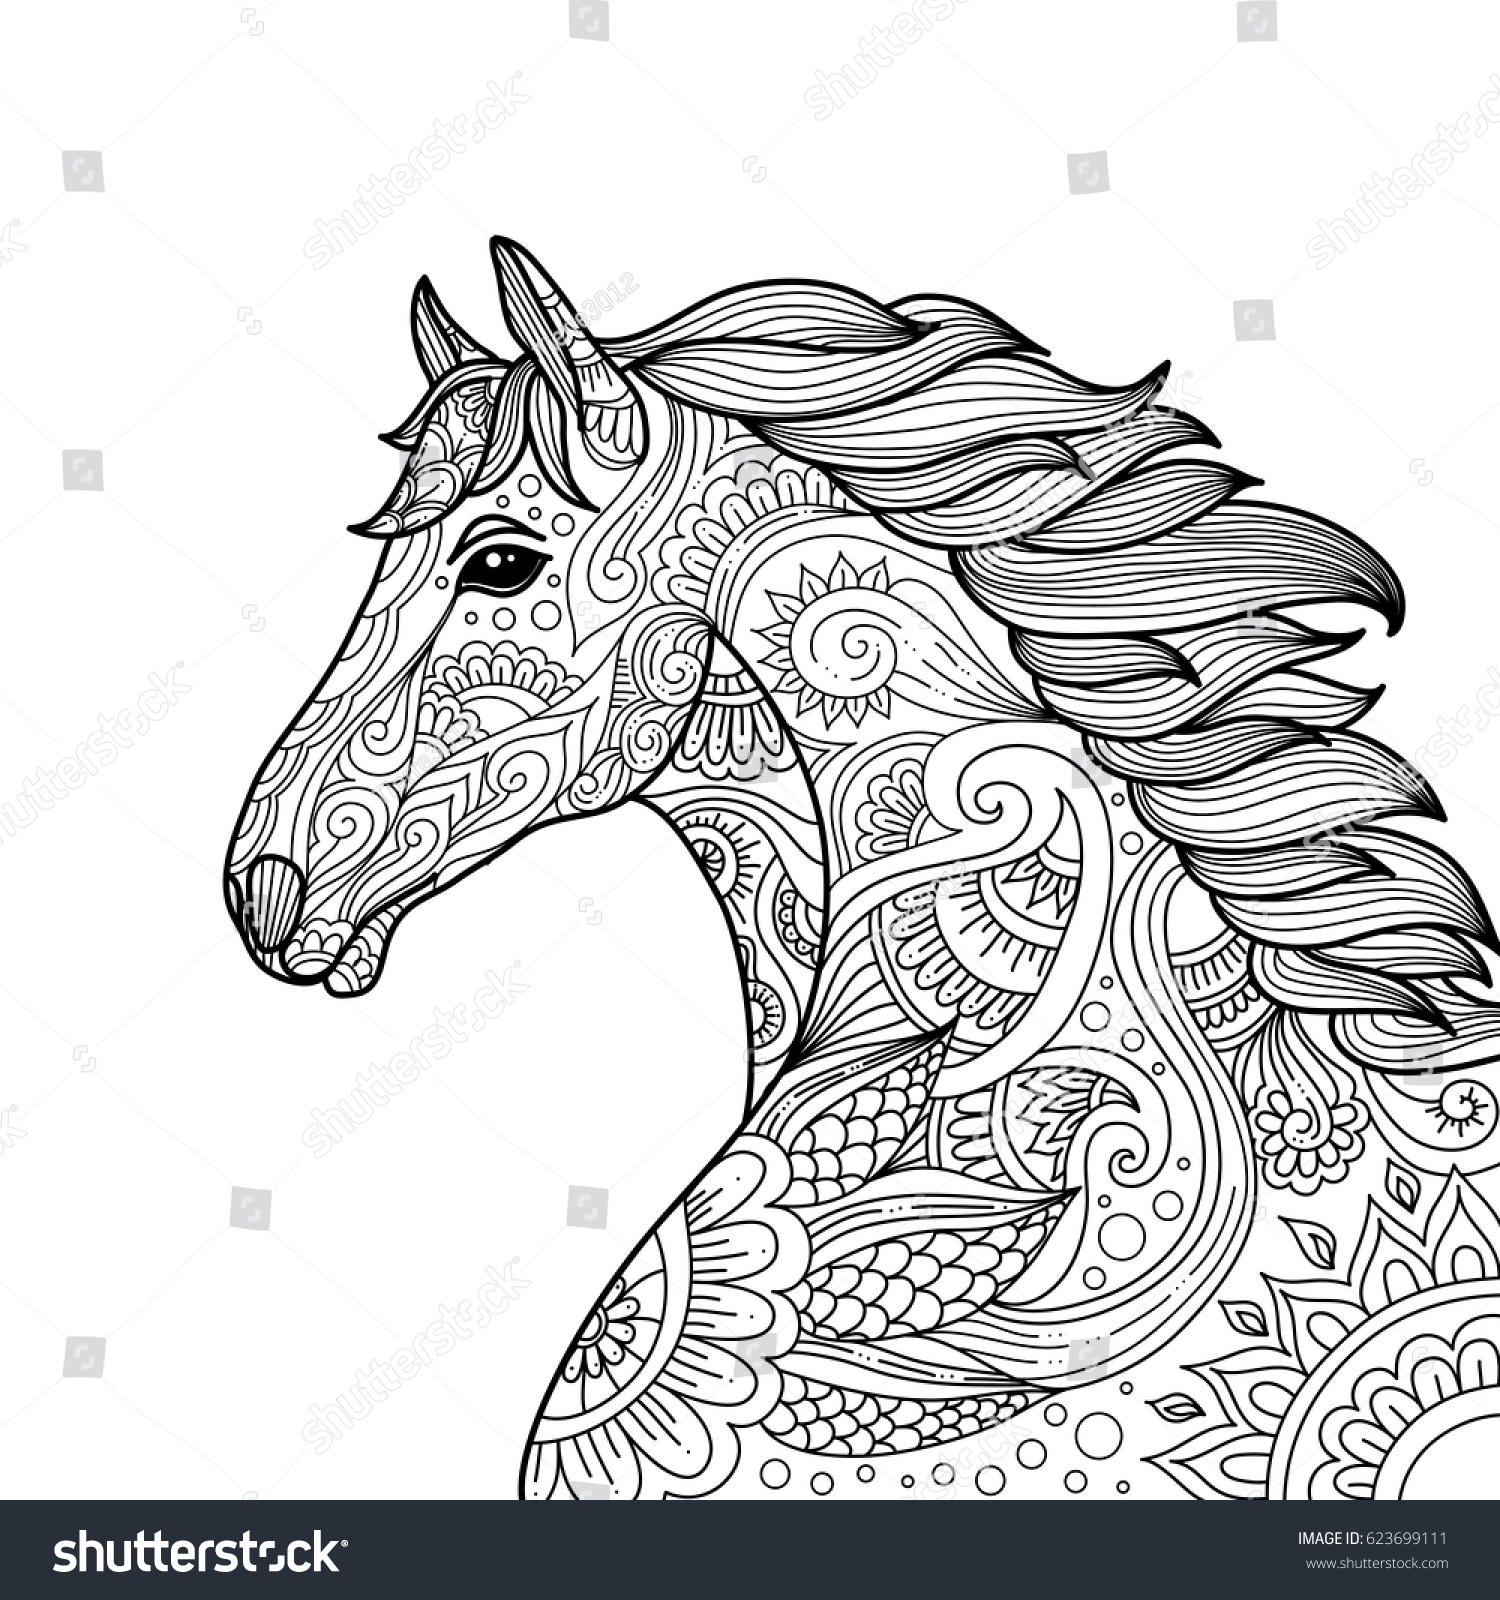 Stylized Hand Drawn Head Horse Coloring Stock Vector (Royalty Free ...